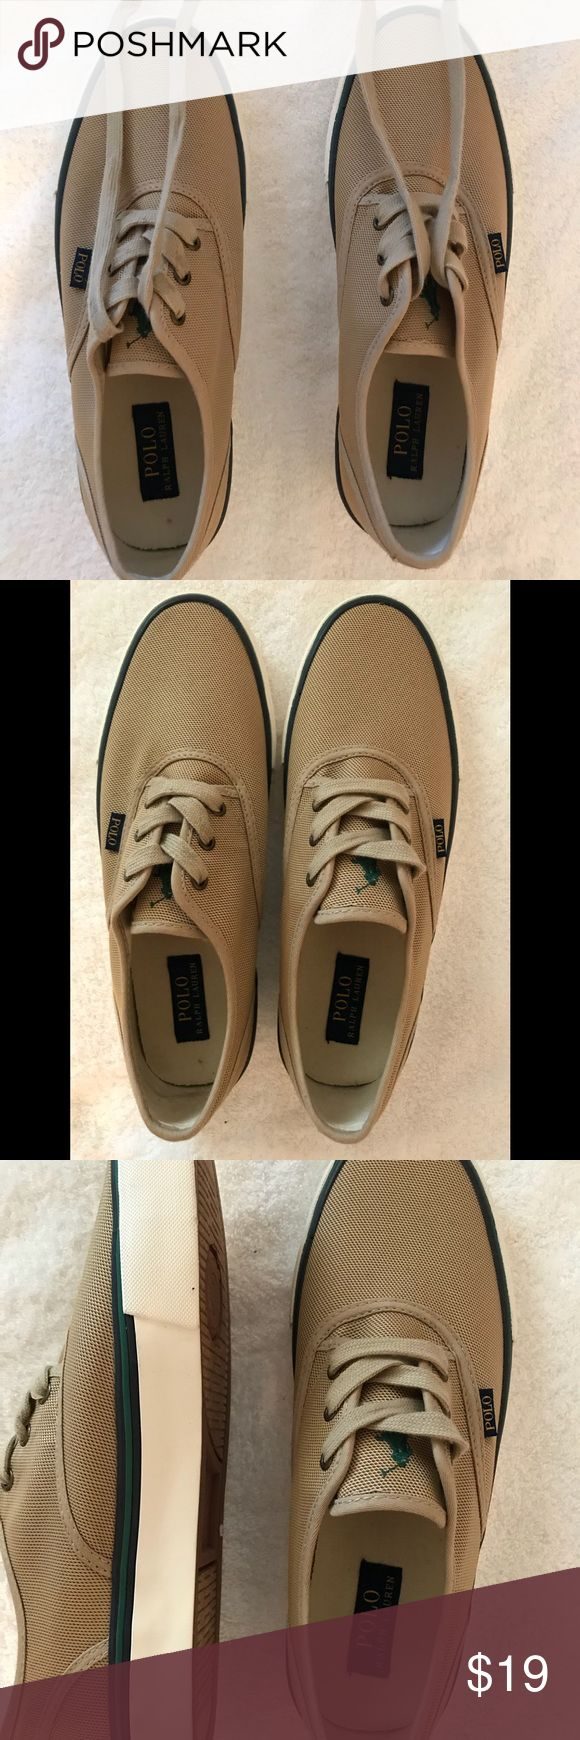 Polo Ralph Lauren men shoes tan size11D In good condition never been worn no flaws Polo by Ralph Lauren Shoes